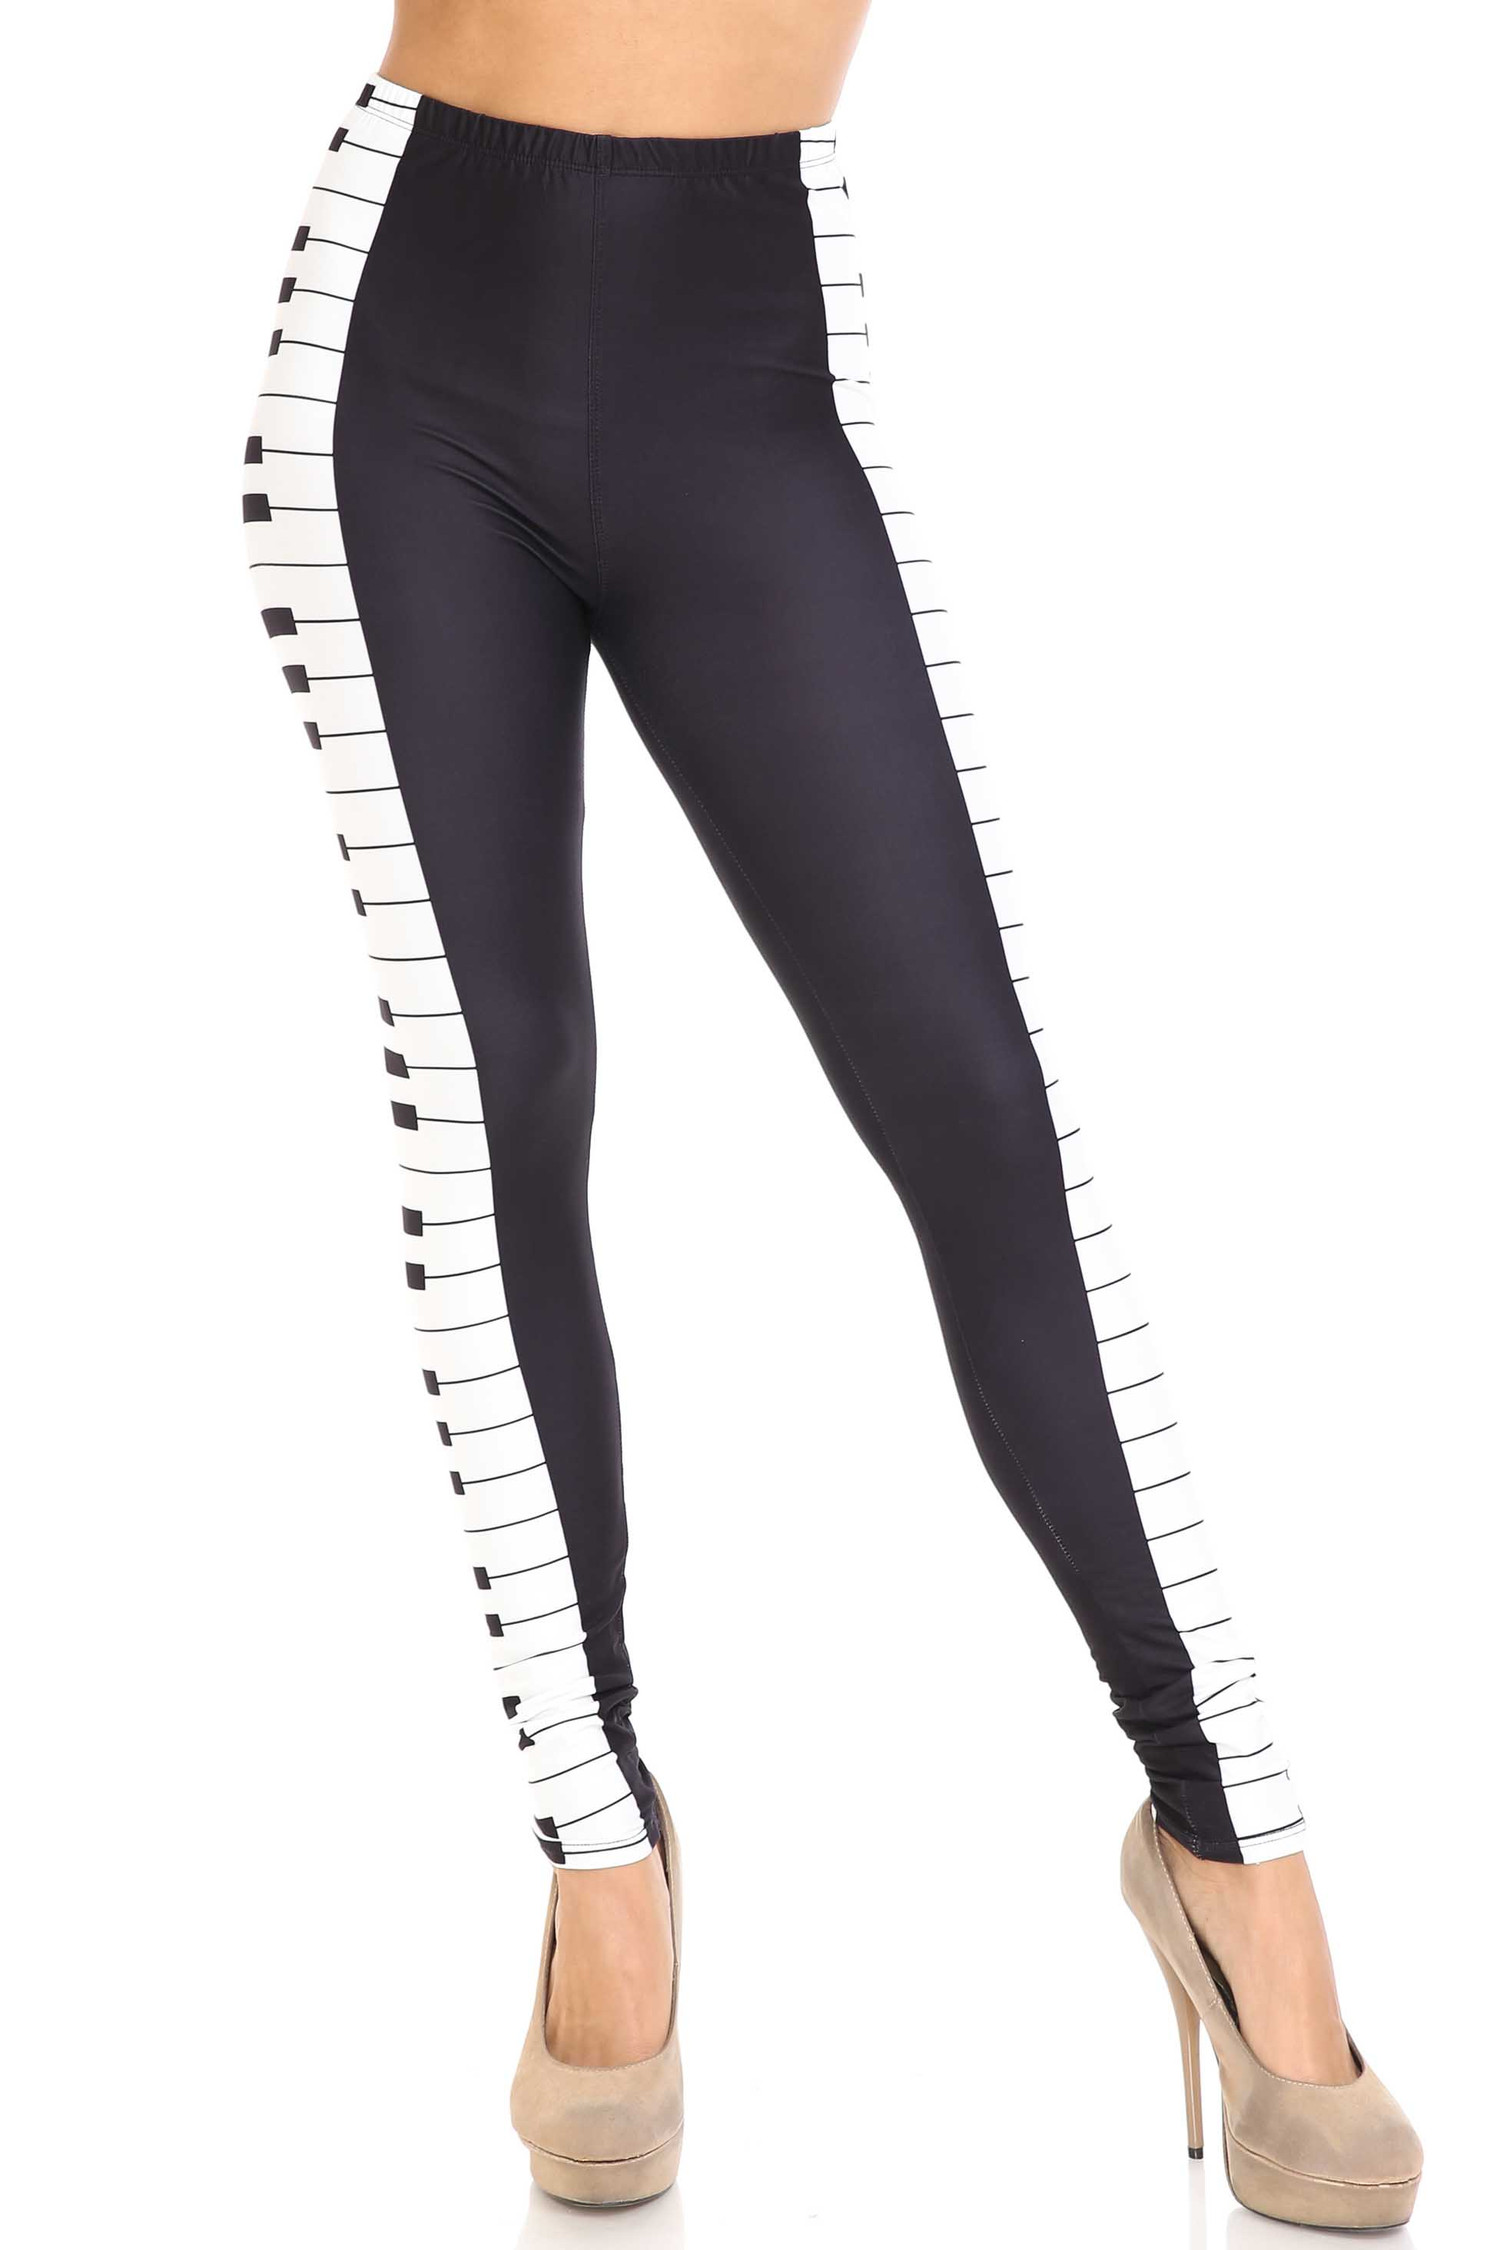 Creamy Soft Keys of the Piano Leggings - USA Fashion™